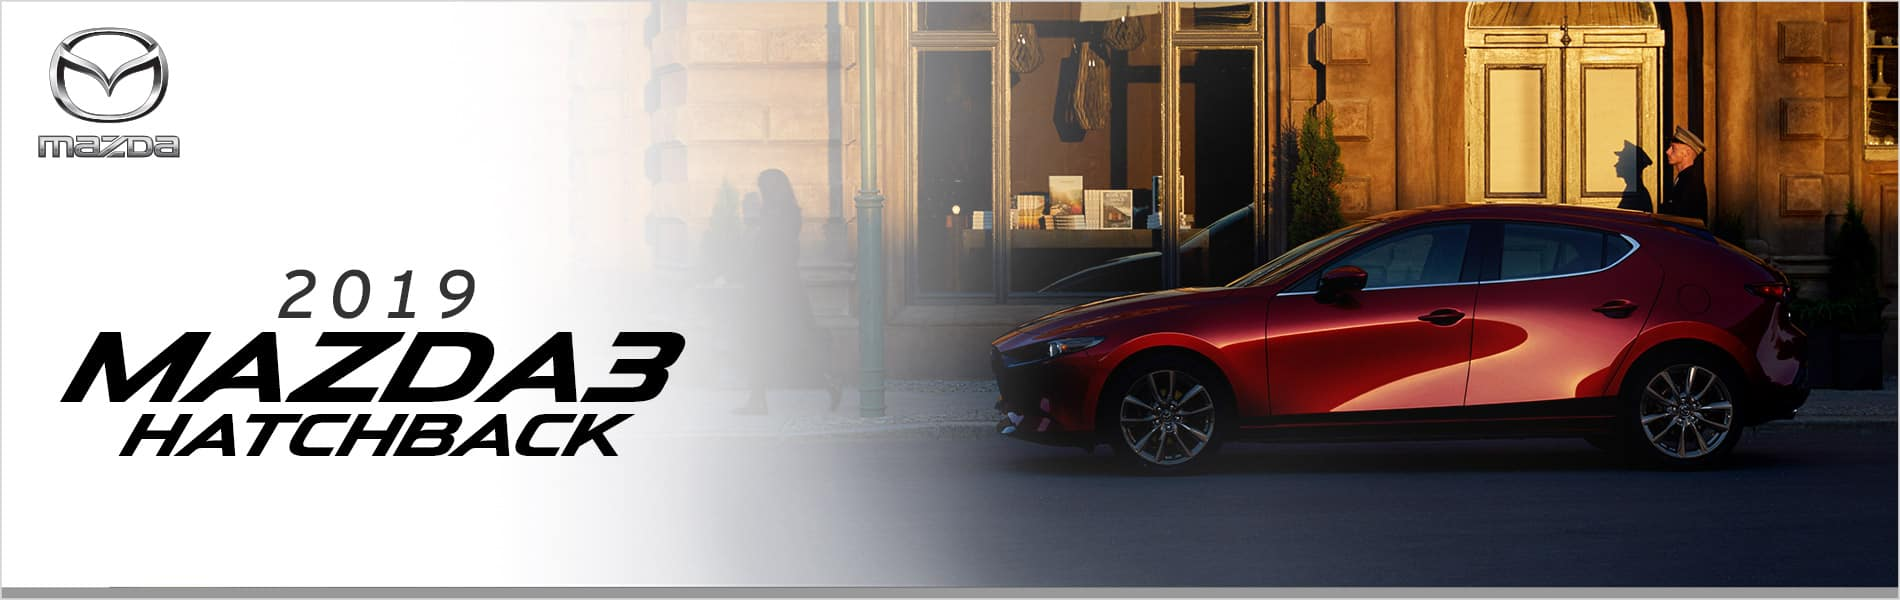 The 2019 Mazda3 Hatchback at Mazda of Bedford in Cleveland, OH